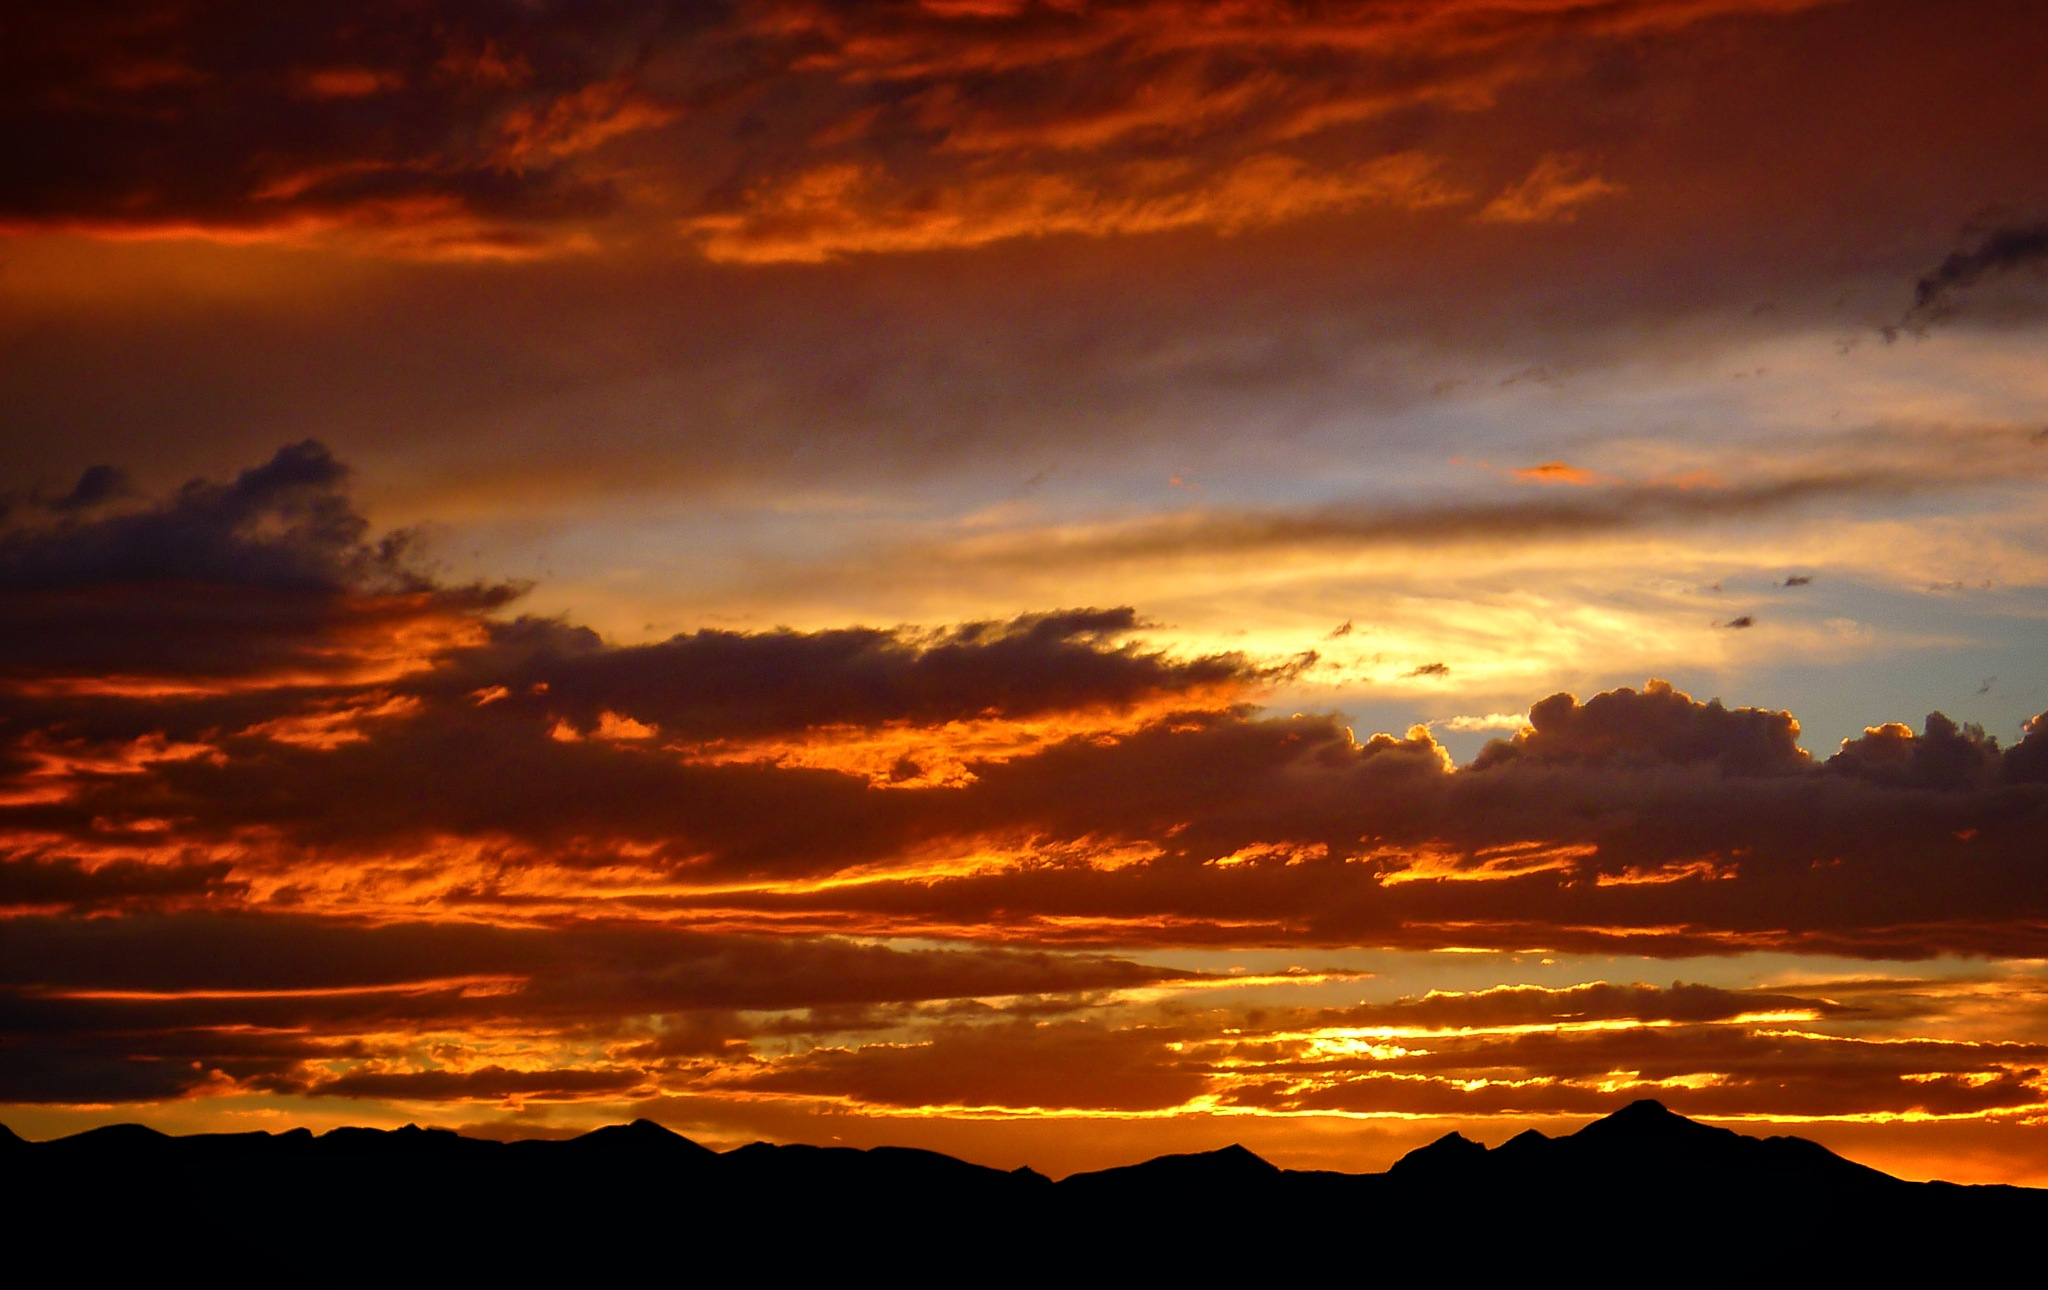 Sunset Over The Front Range by sciguylvms